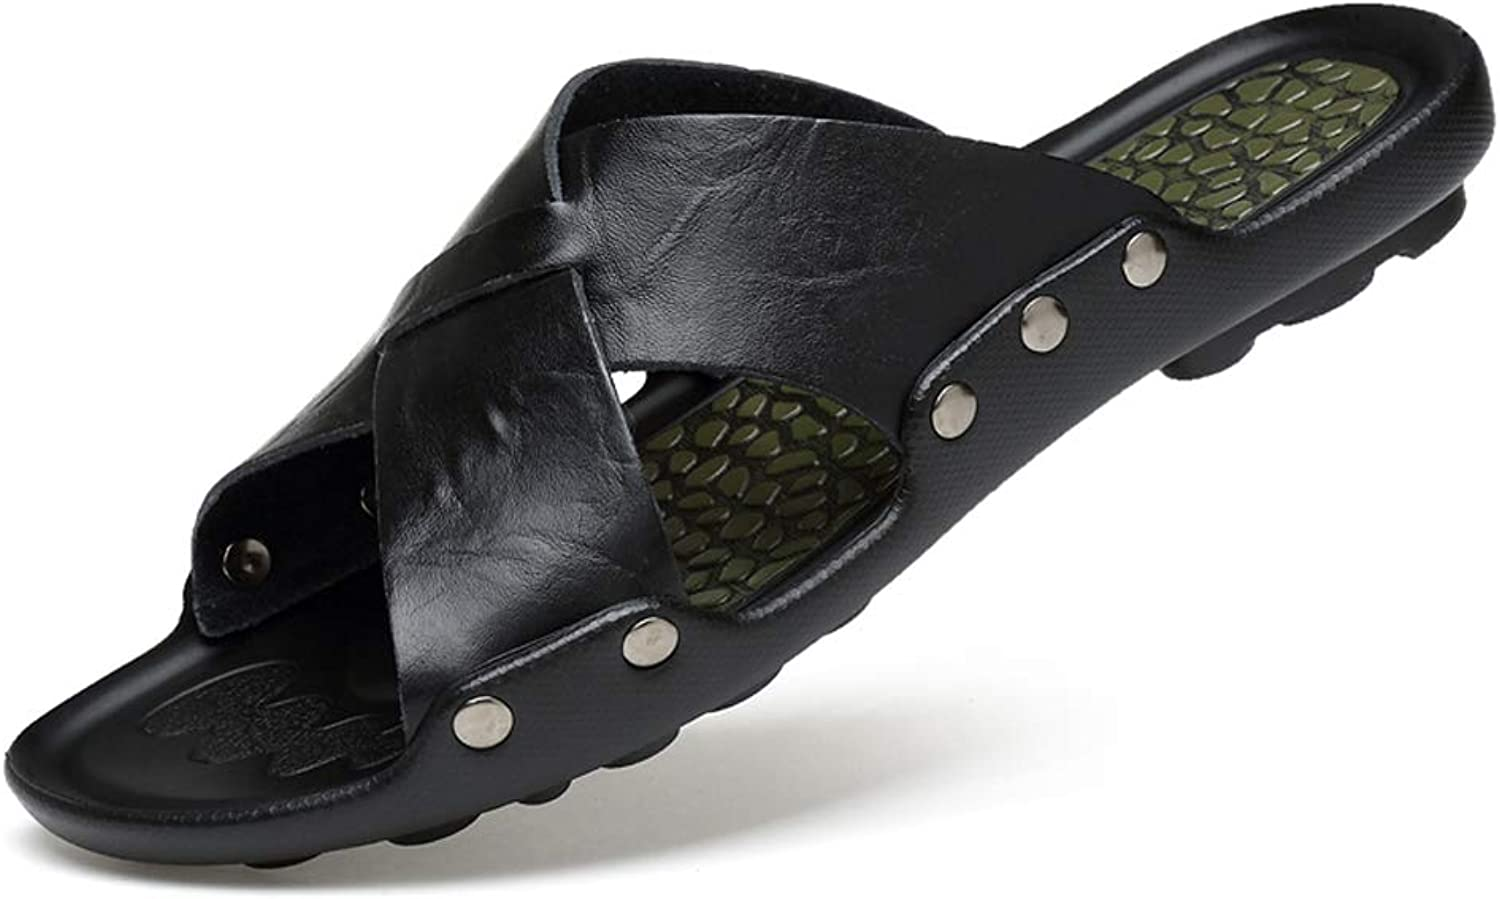 GLJJQMY Black Men's Slippers Summer Non-slip Cross Slippers English shoes Soft Soles Sandals And Slippers flip flop (color   Black, Size   7.5 UK)